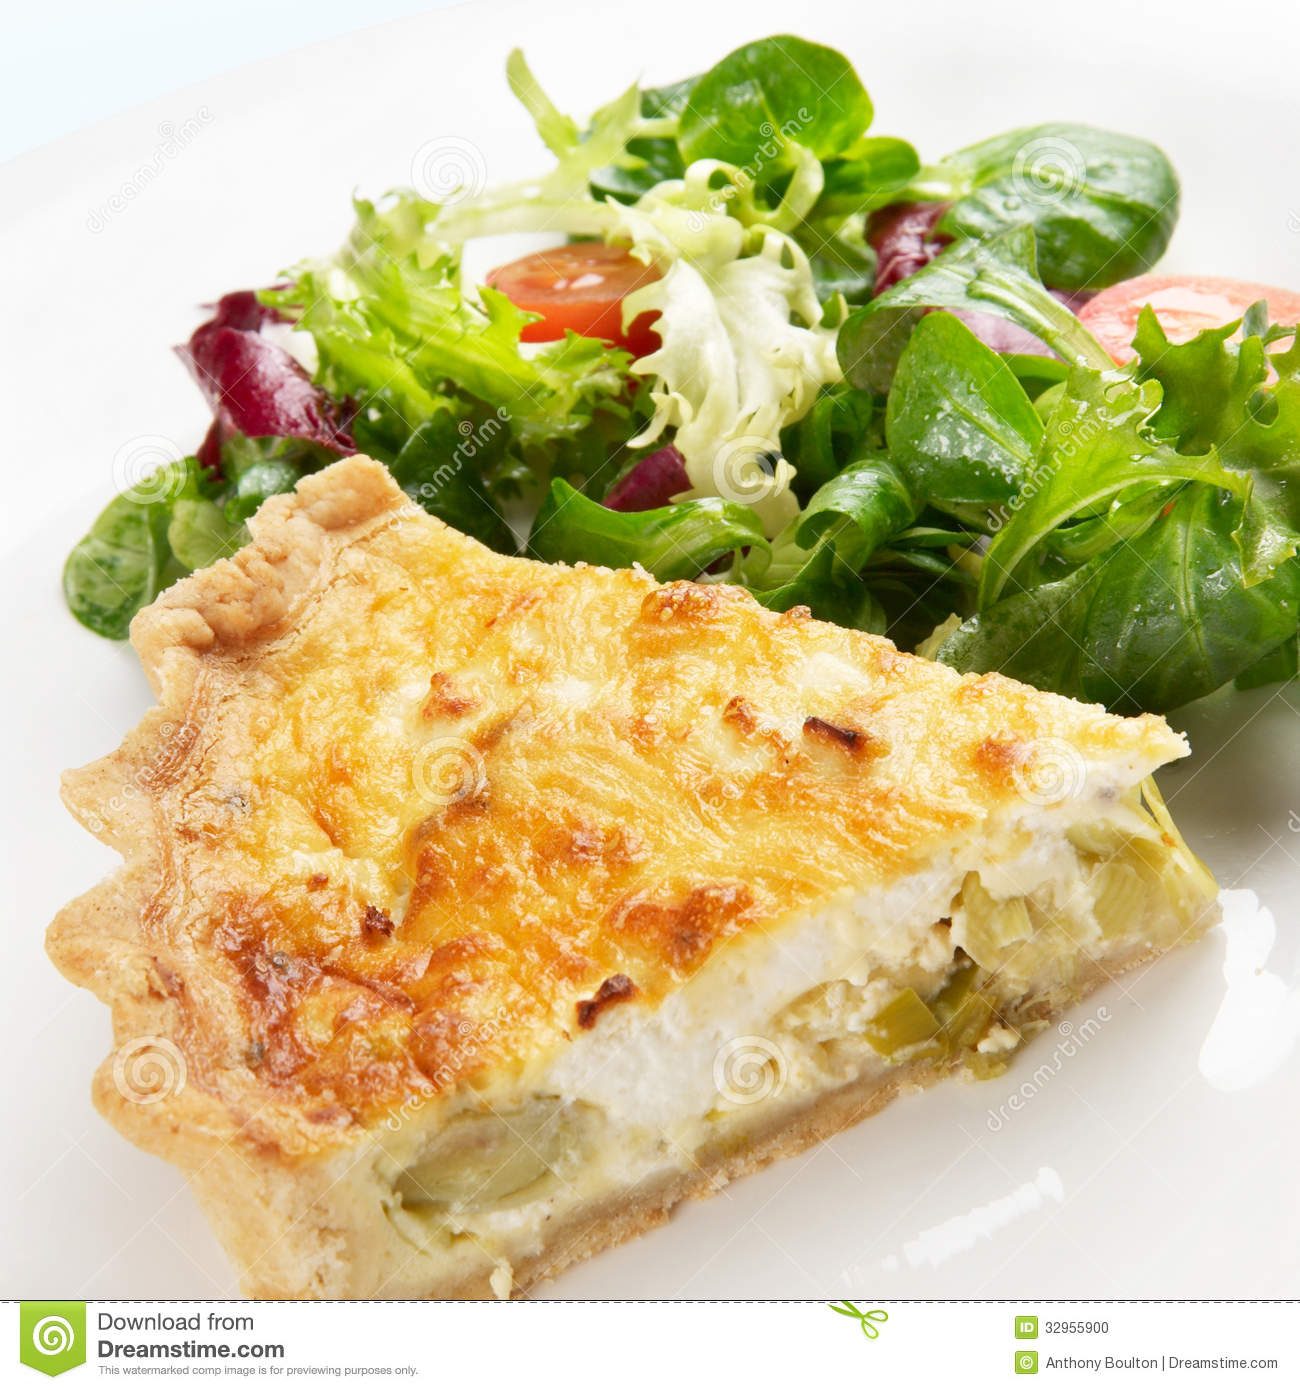 ... of leek and goats cheese quiche on a plate with crispy leaf salad